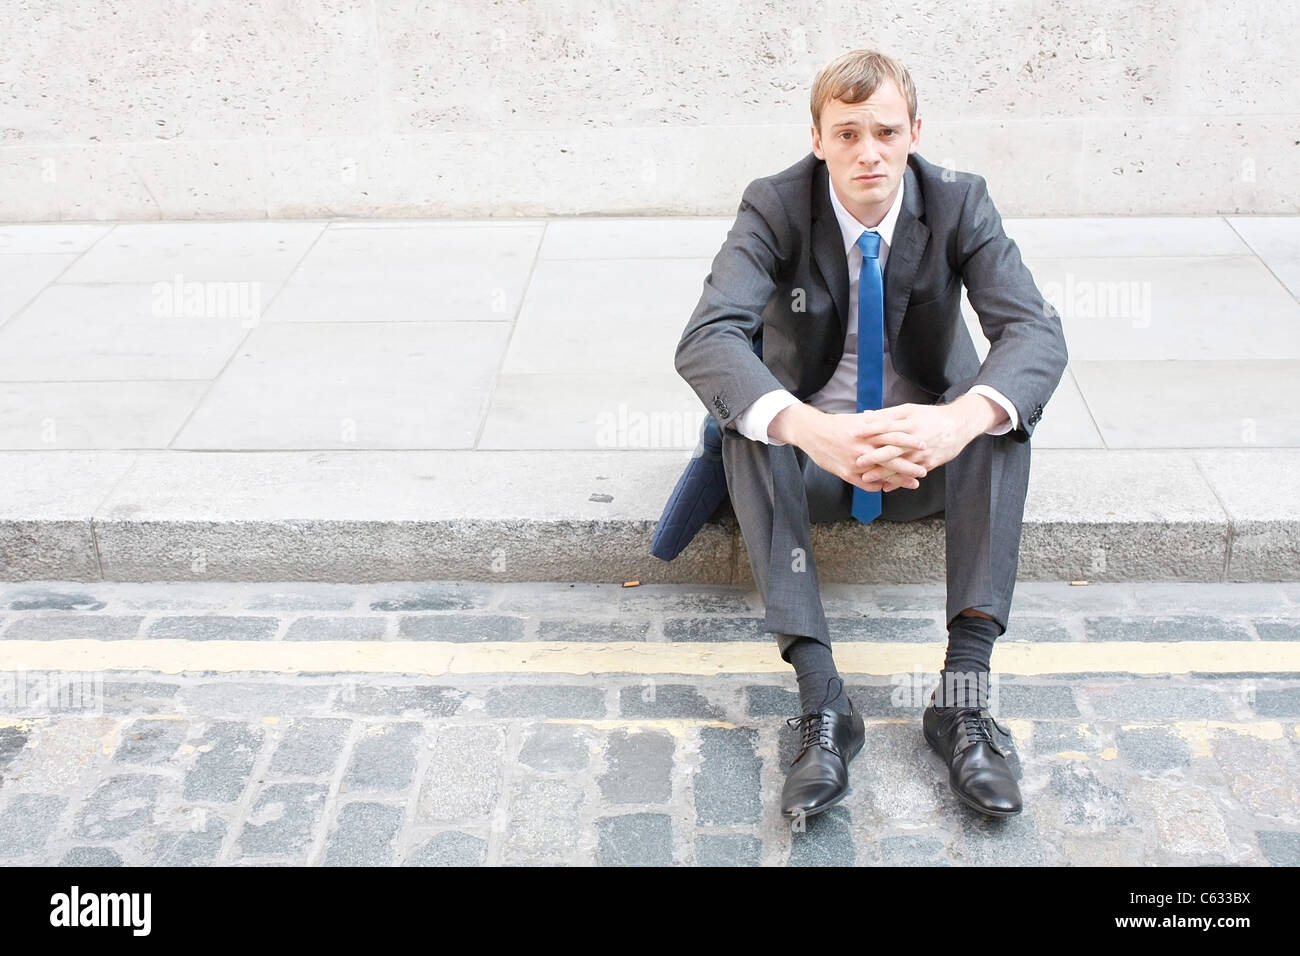 A worried business man sitting on some stairs - Stock Image